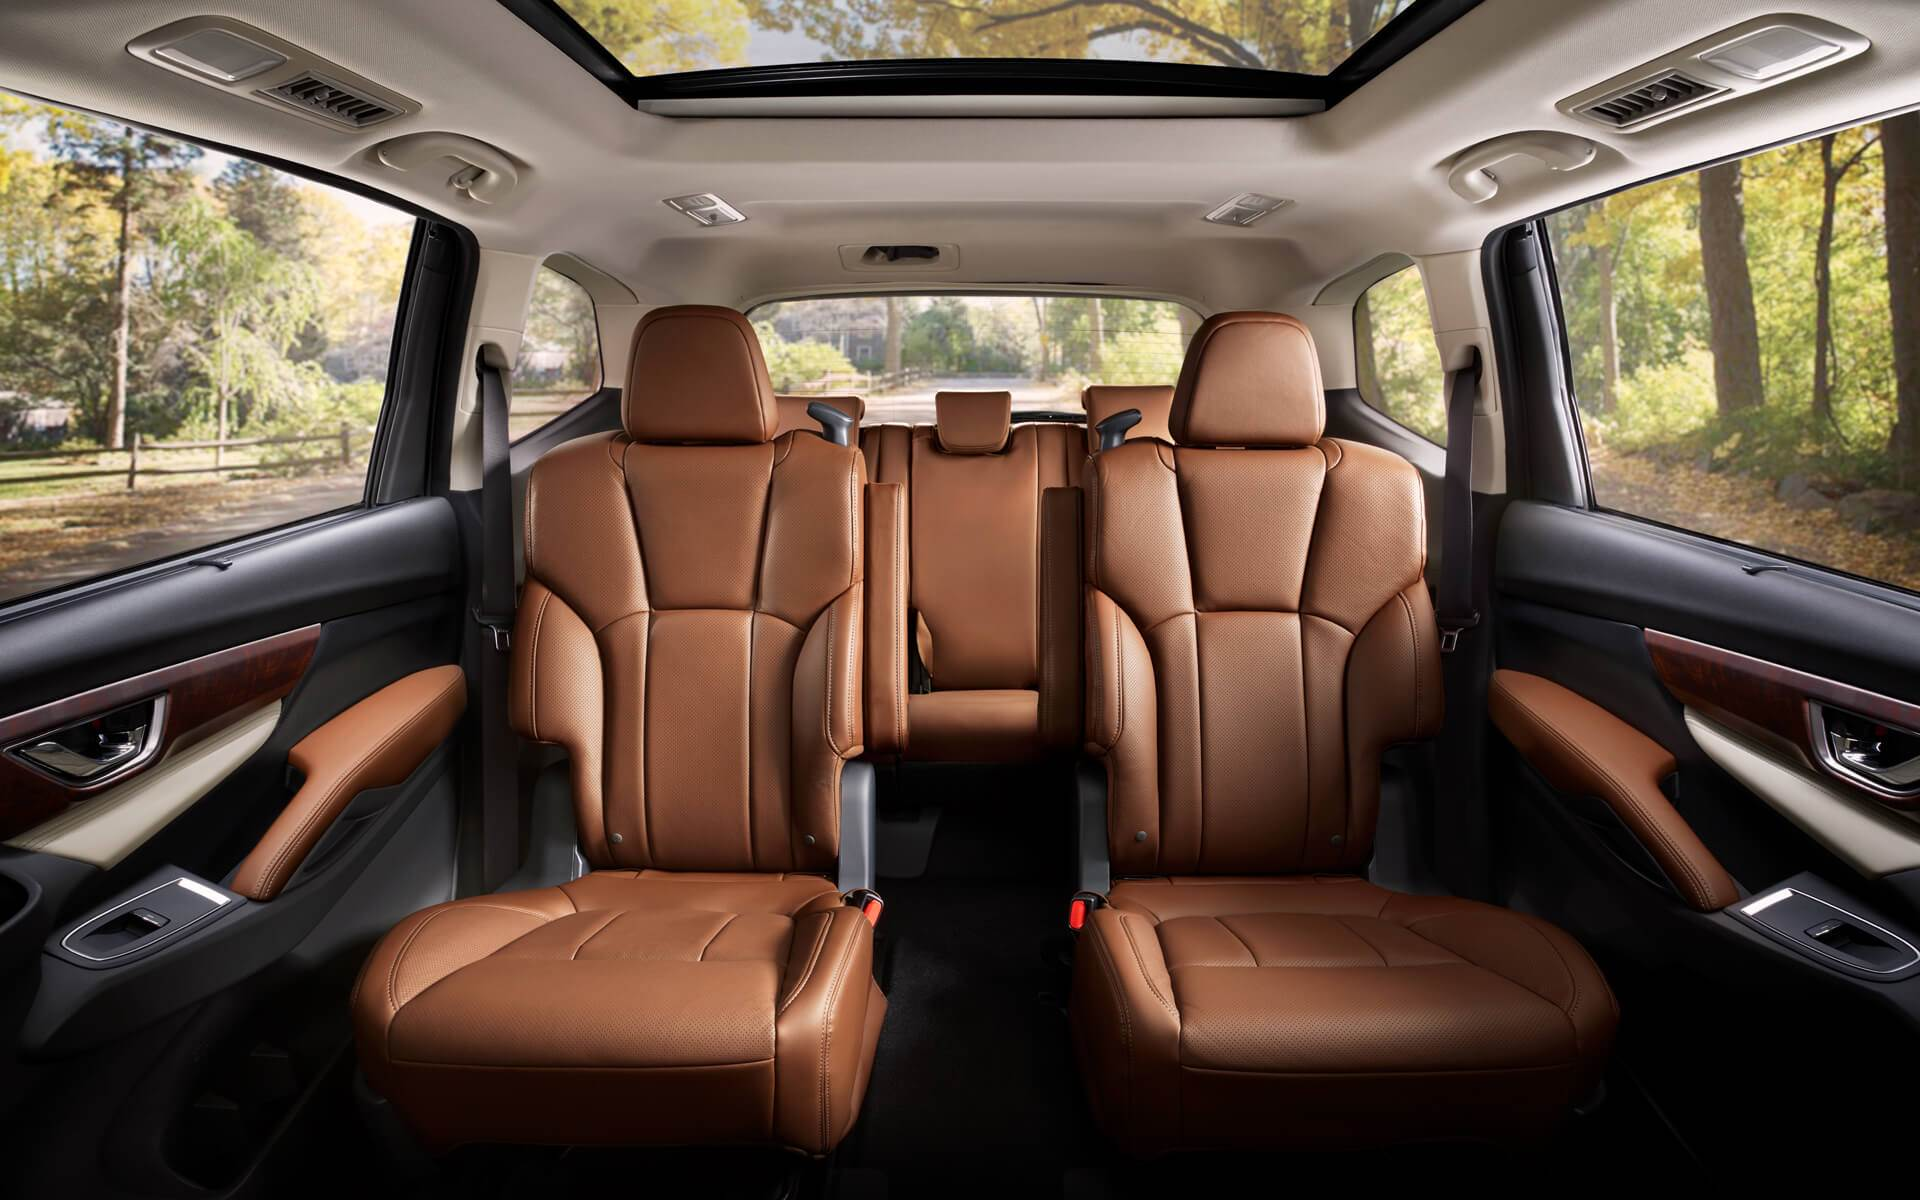 2021 Subaru Ascent 3rd Row Interior